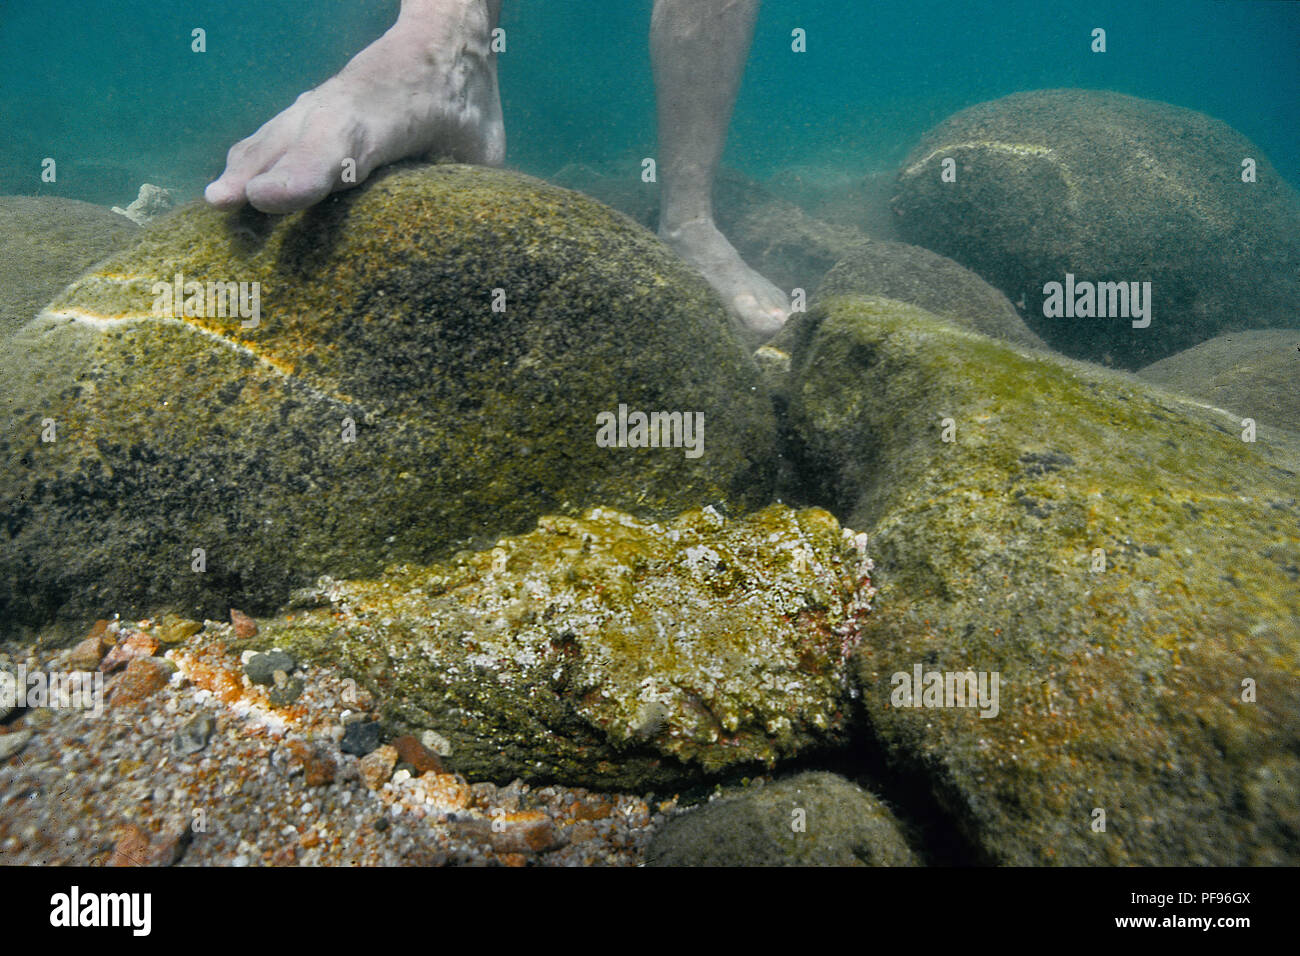 Reef stonefish or real stonefish (Synanceia verrucosa), the world's most venomous fish at shallow water next to human feet, Ari Atoll, Maledive island - Stock Image